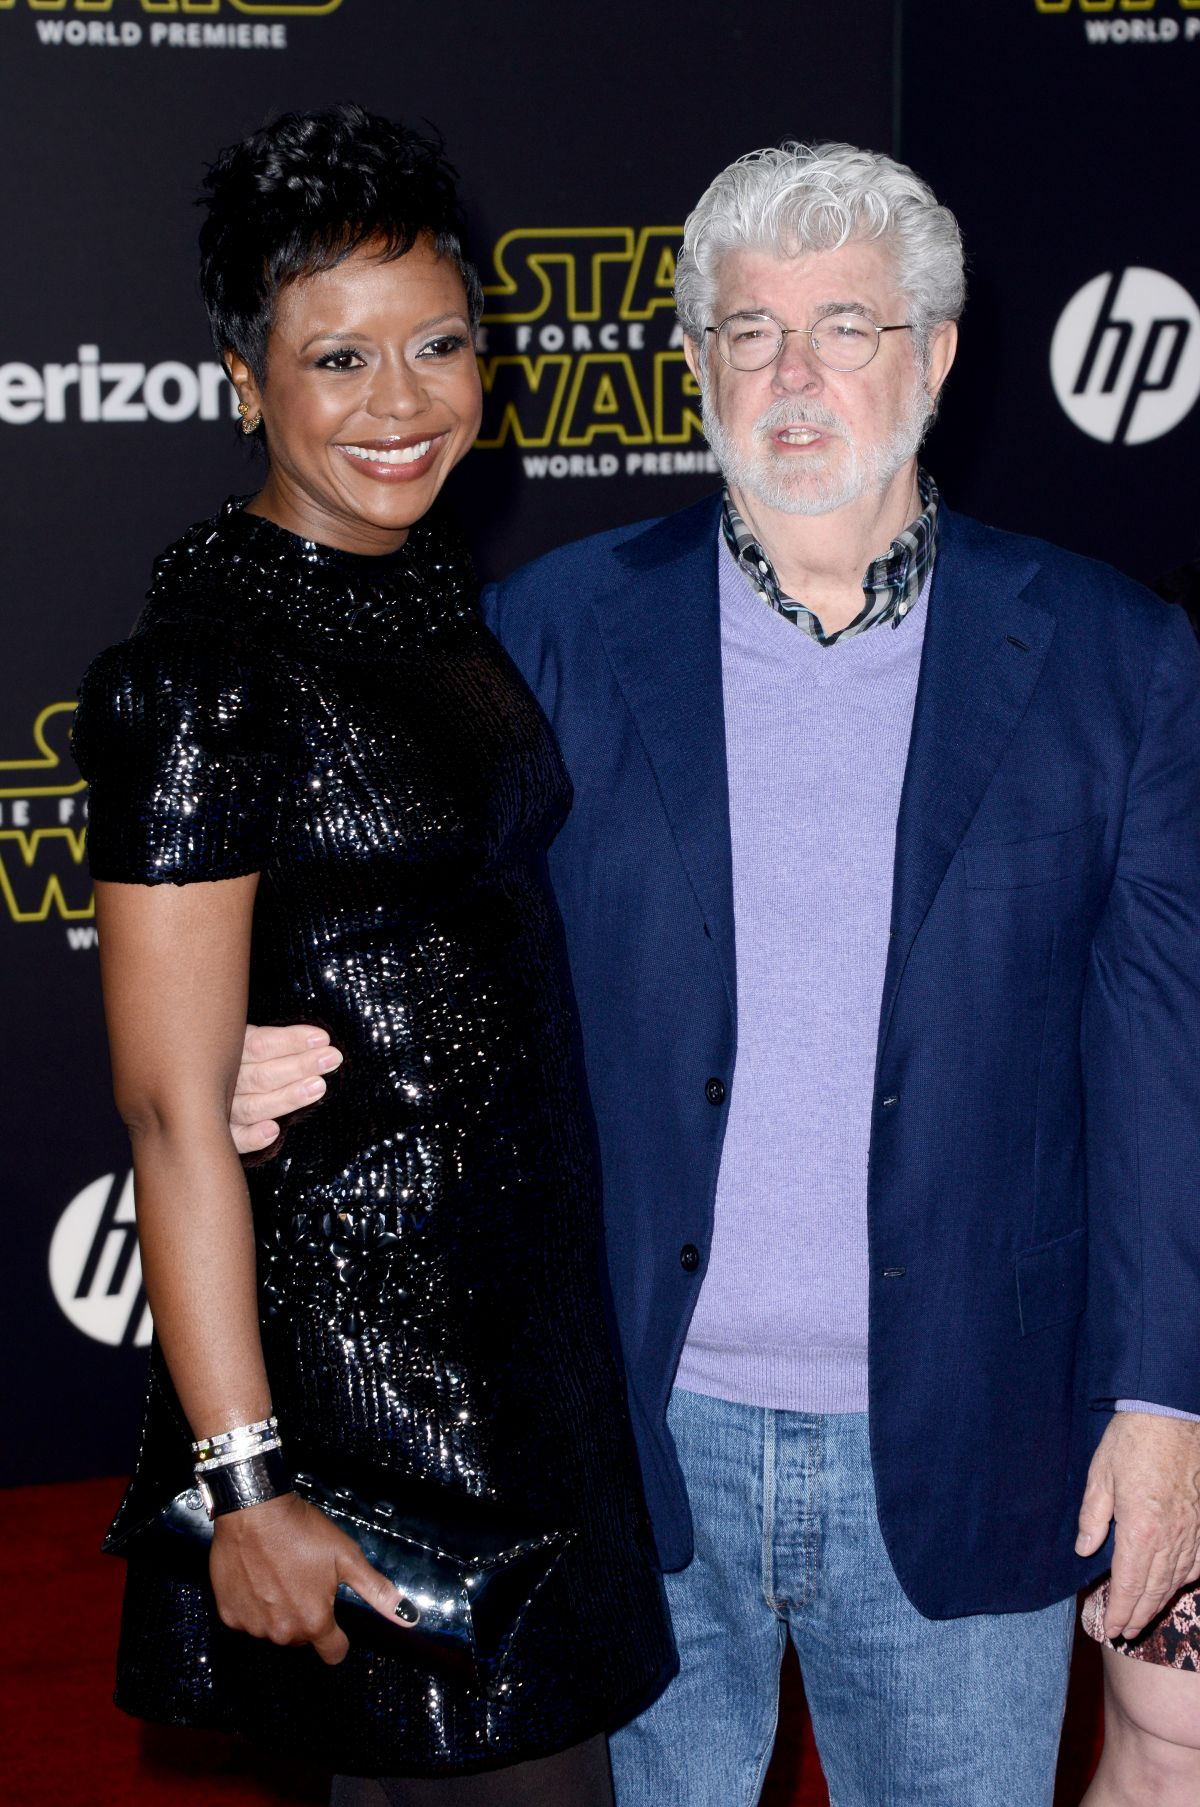 MELLODY HOBSON at Star Wars: Episode VII – The Force Awakens Premiere in Hollywood 12/14/2015